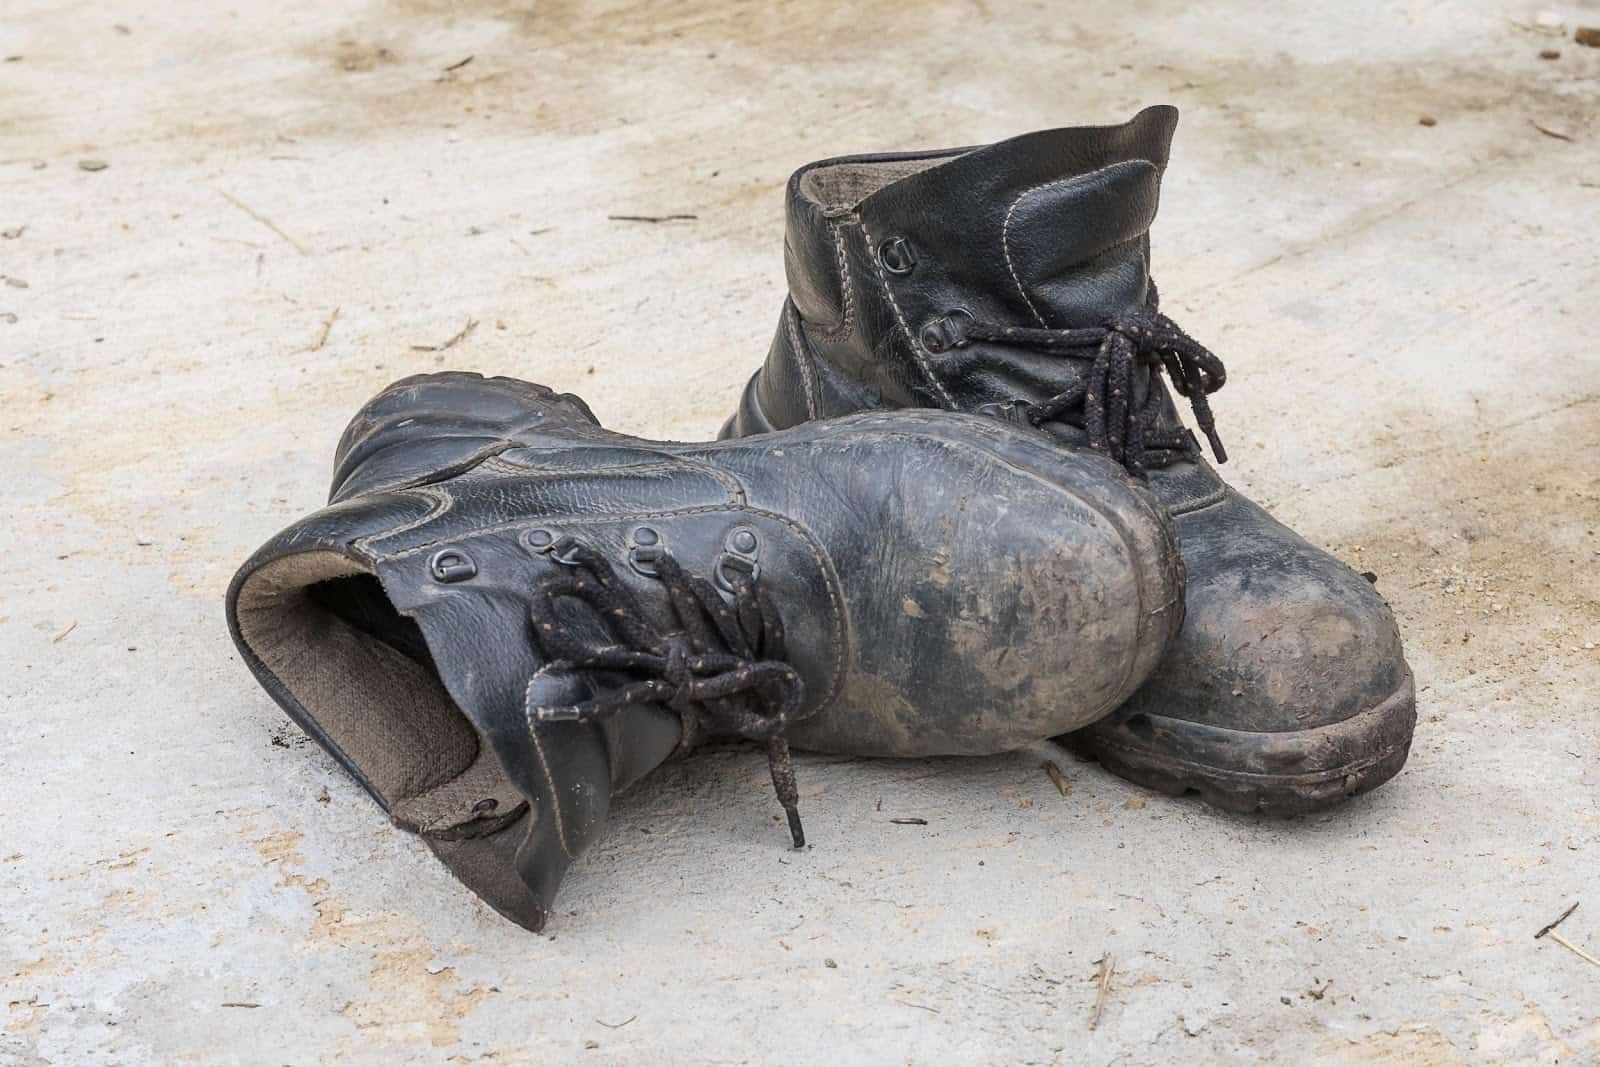 cleaning mud away from shoes in monsoon